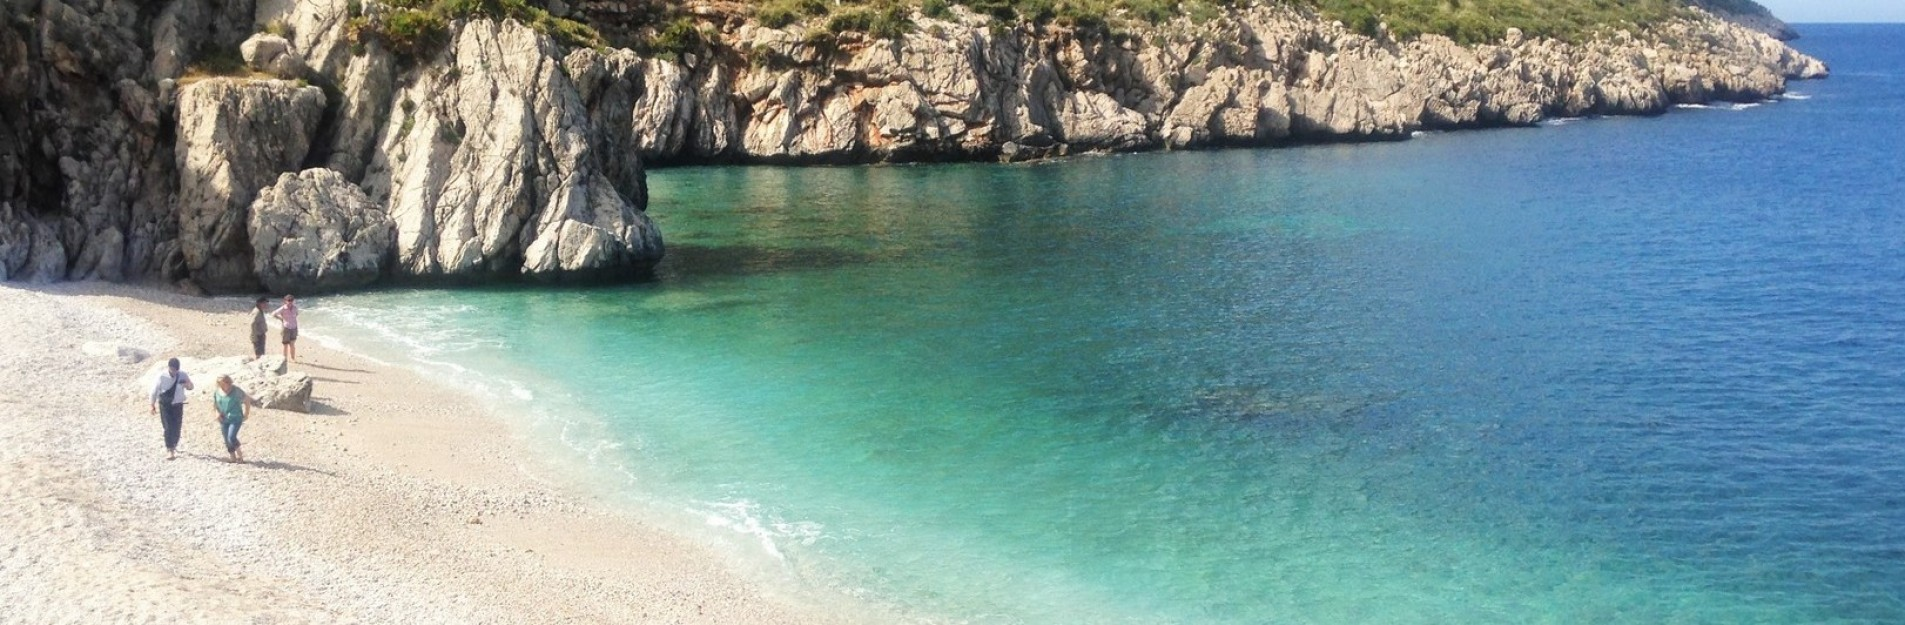 ...break d'autunno in Sicilia !!!